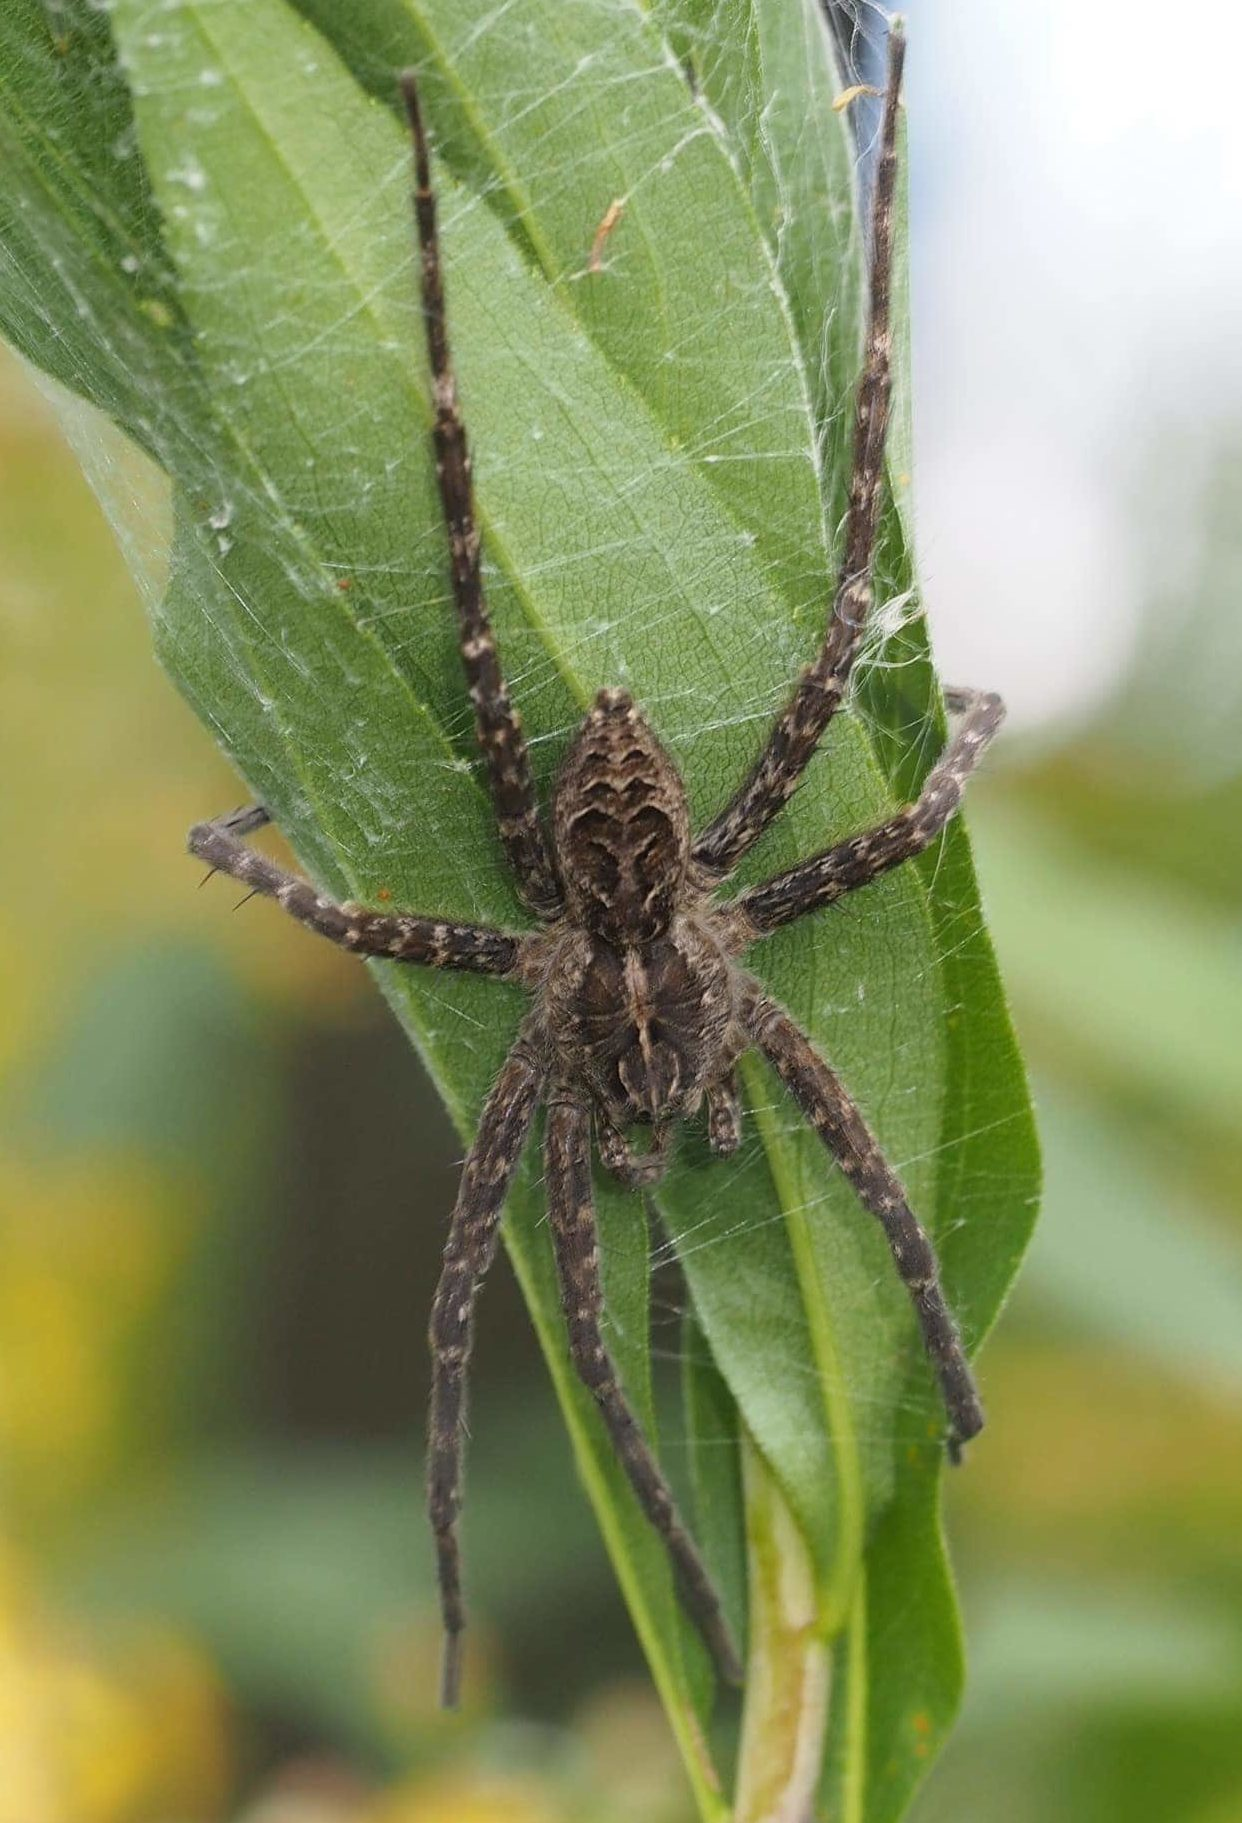 Picture of Dolomedes scriptus (Striped Fishing Spider) - Female - Dorsal